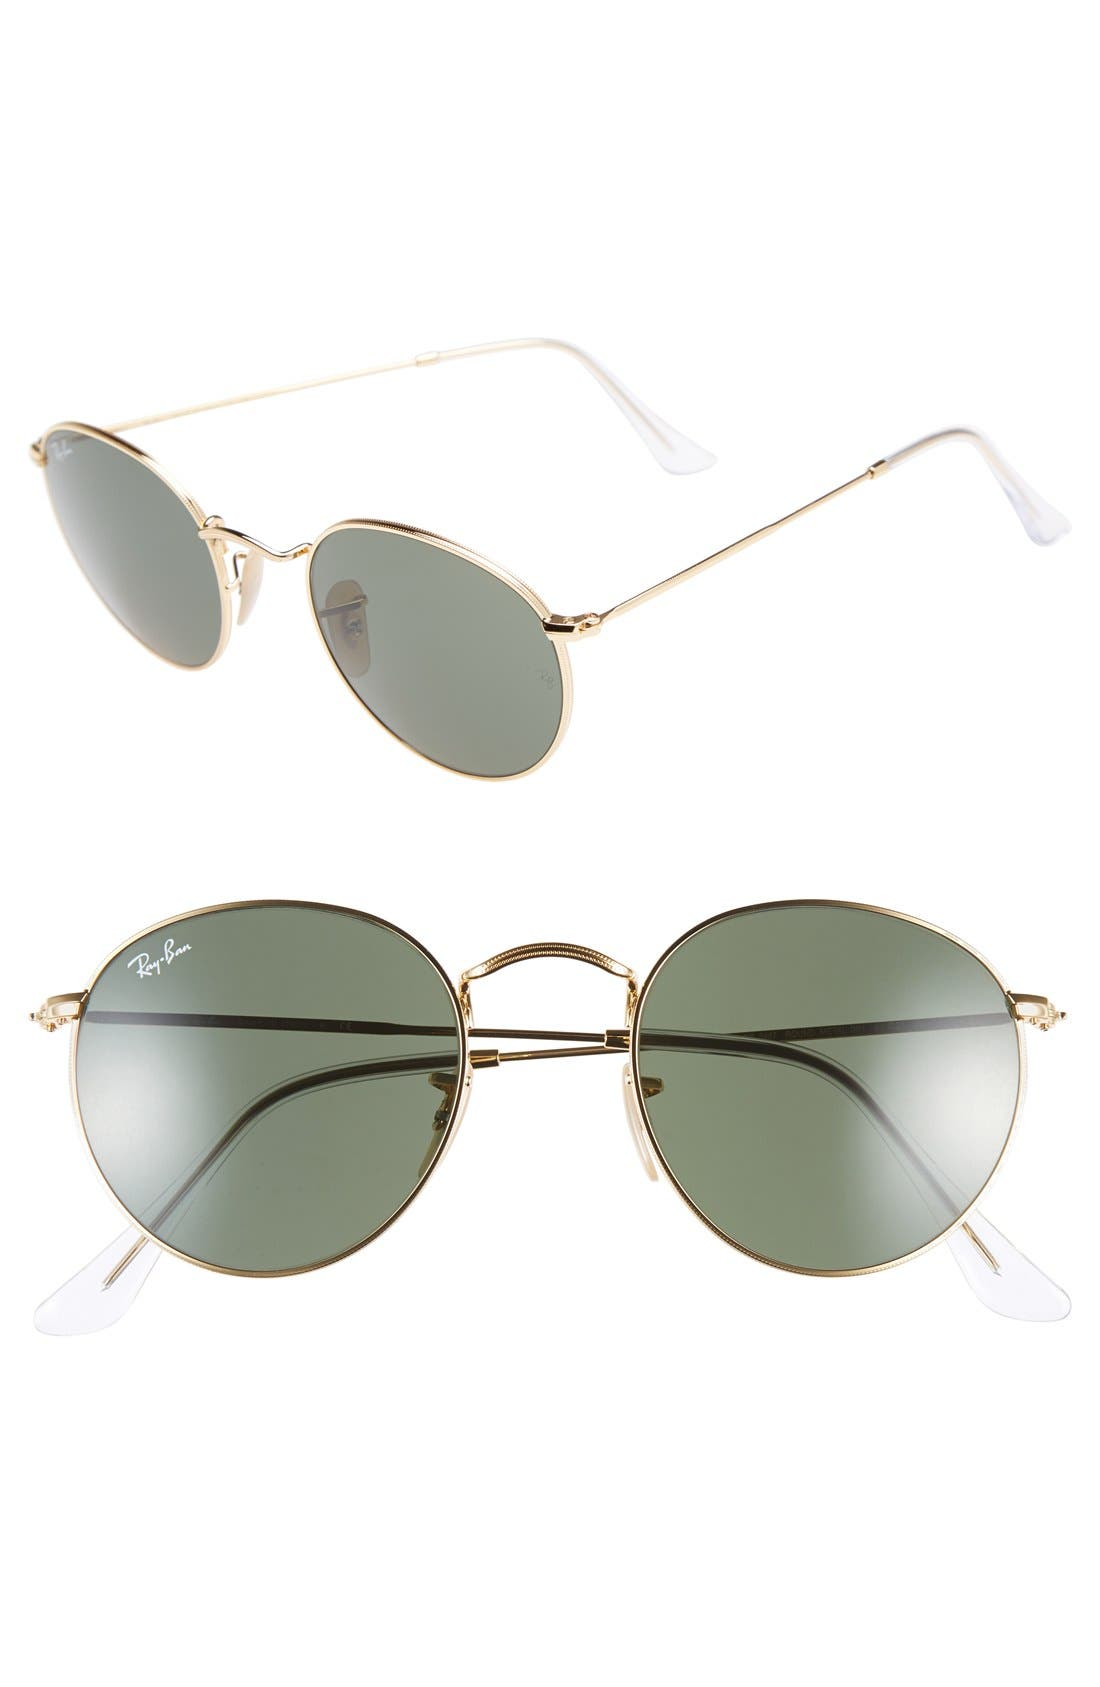 Icons 50mm Round Metal Sunglasses,                         Main,                         color, Gold/ Green